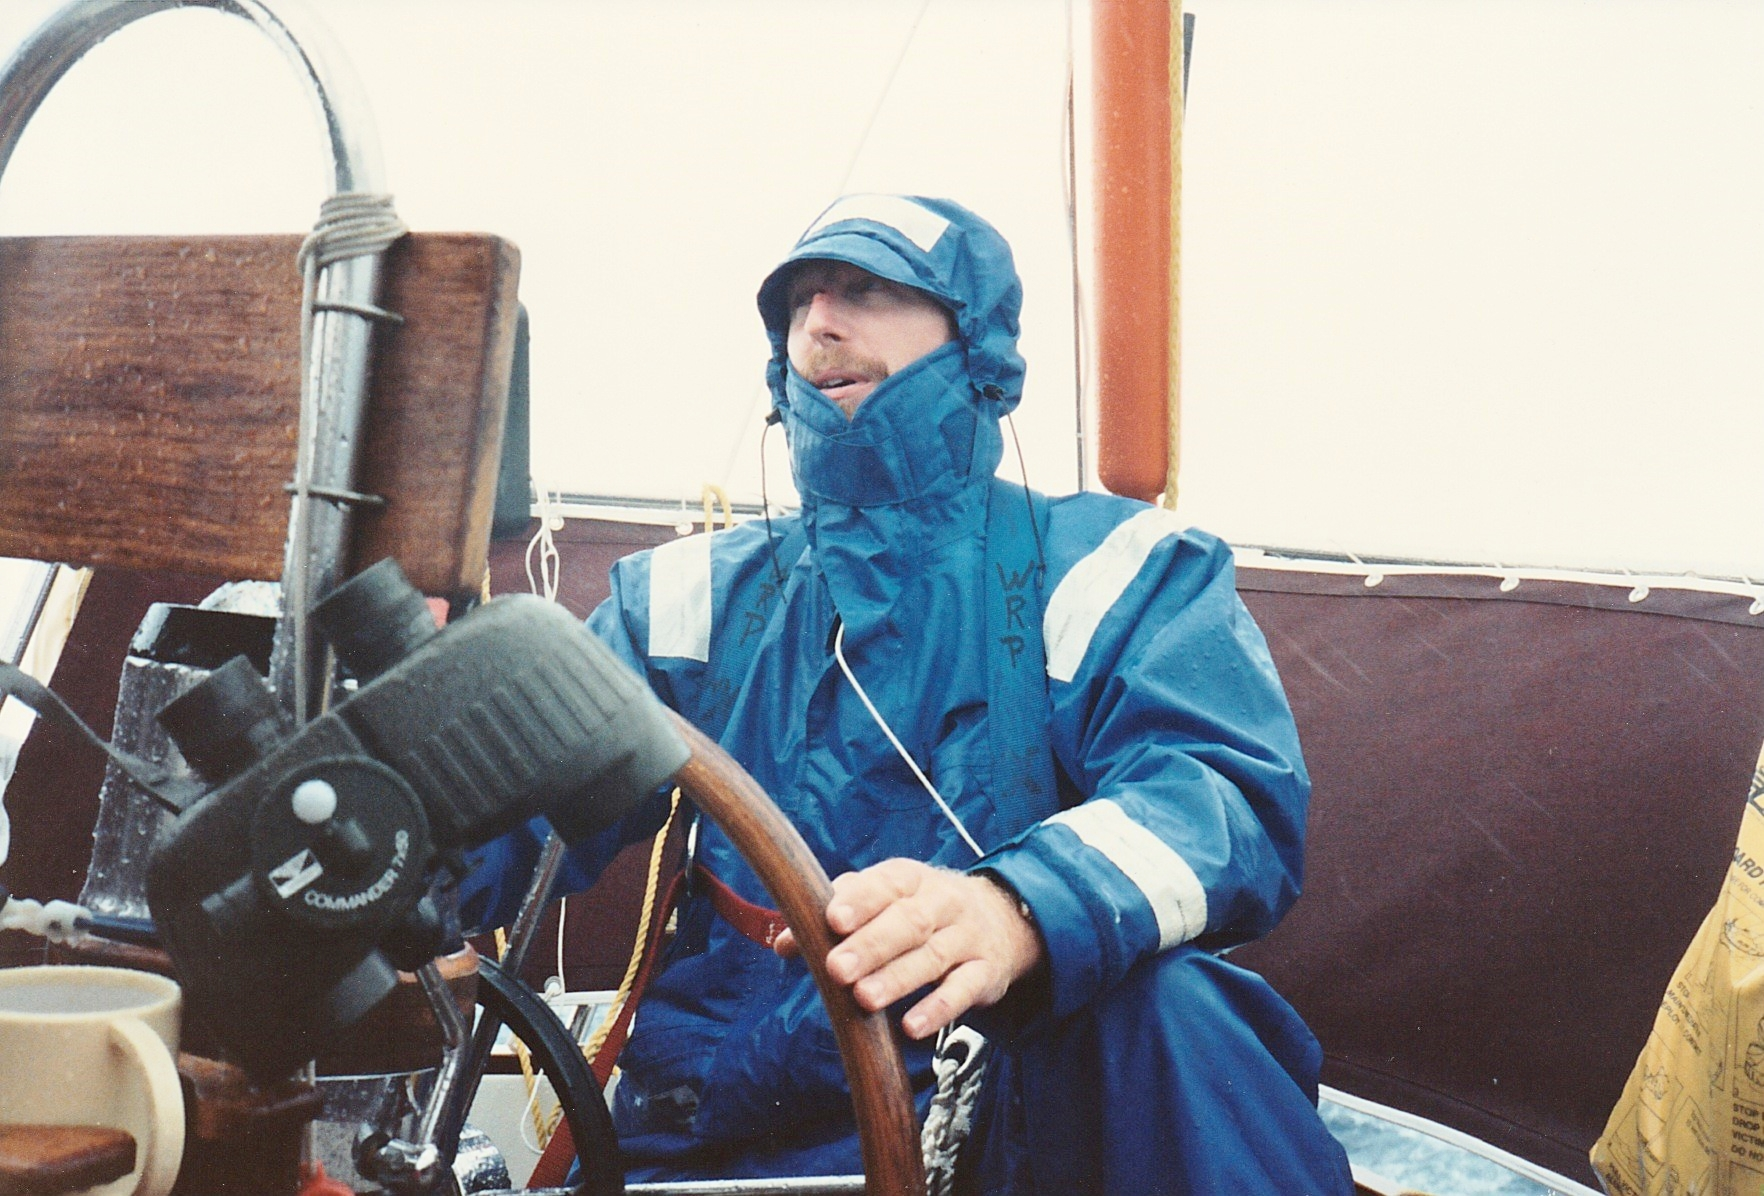 Many miles offshore in a storm, a much younger me learns how to handle a boat in such conditions and to keep things together and on course until conditions moderate,